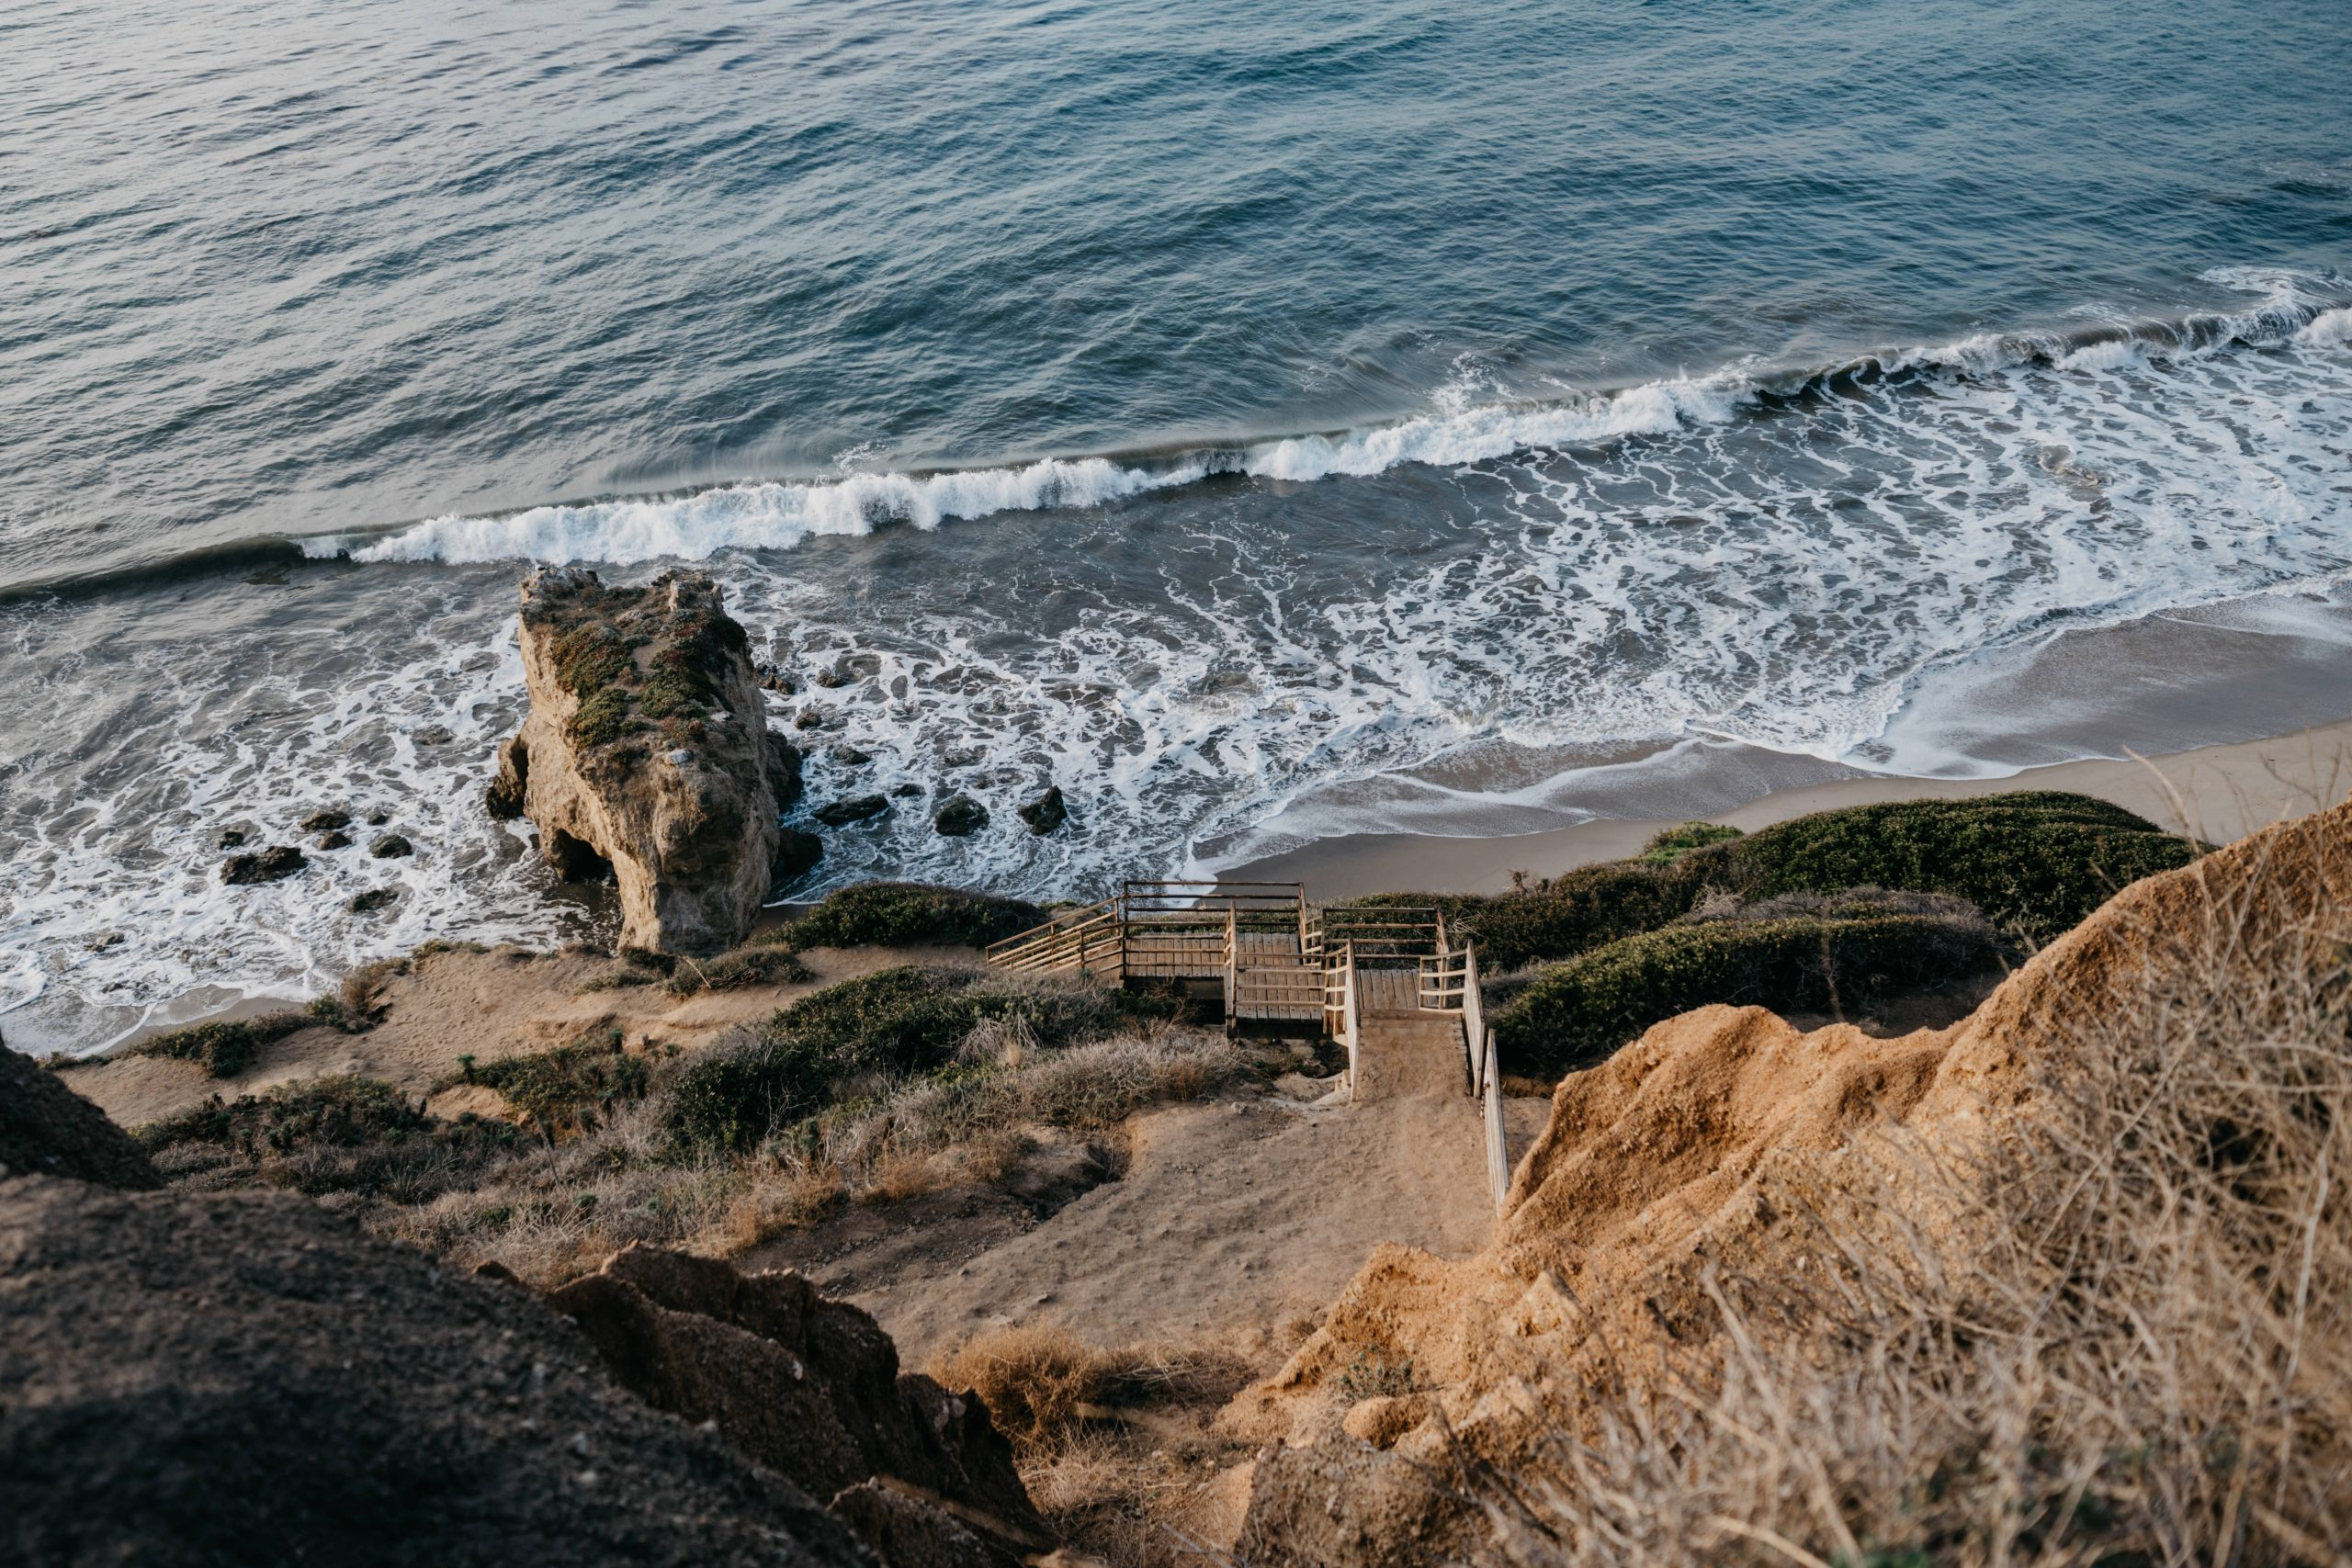 El Matador Beach Desktop Wallpaper, image by Fatima Elreda Photo